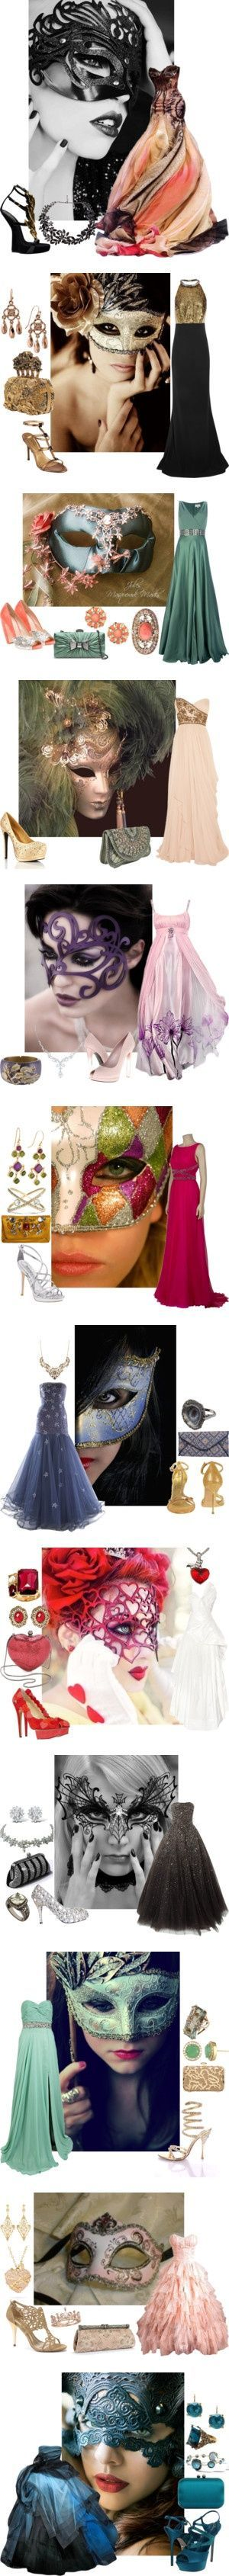 Perfect ideas for a Masquerade Ball!